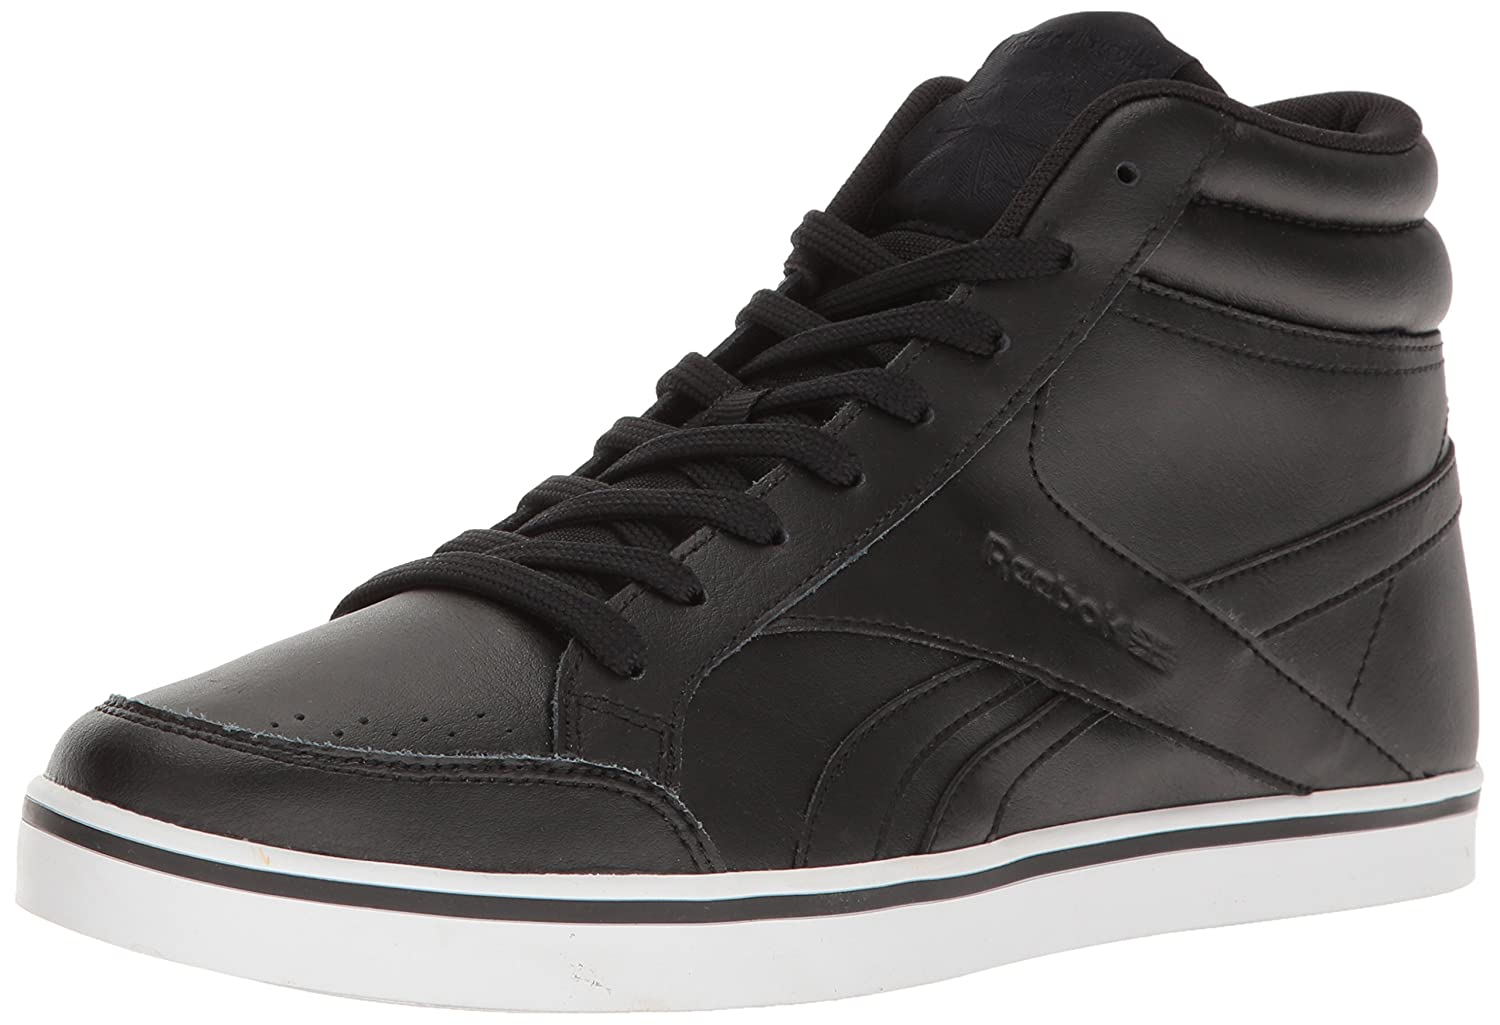 Reebok Women's Royal Aspire 2 Fashion Sneaker B01IO1663G 7.5 B(M) US|Us-black/White